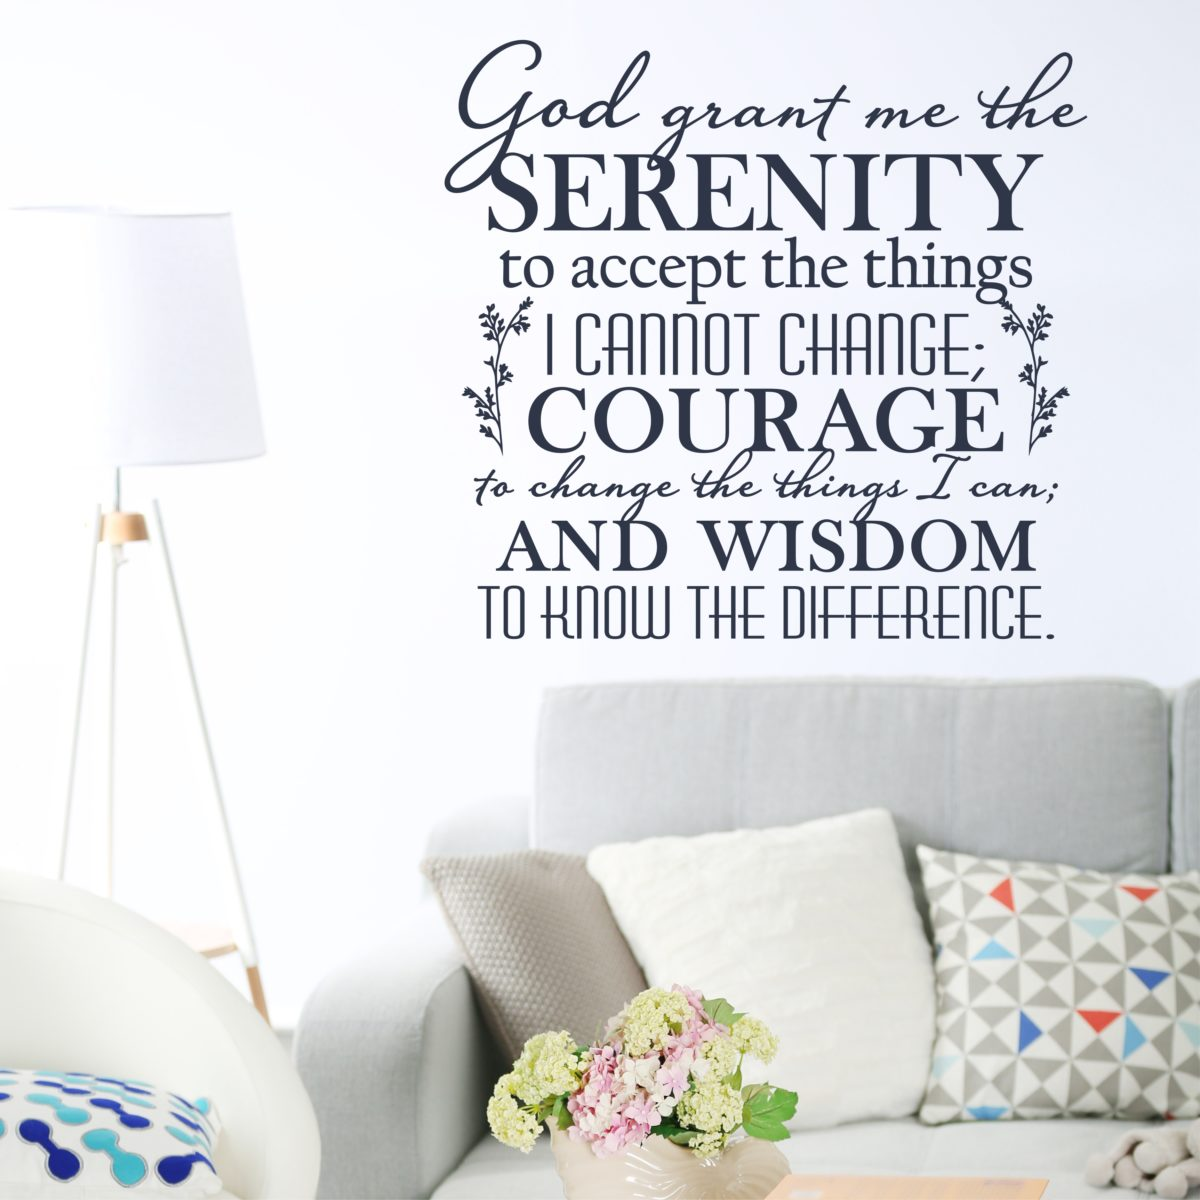 Serenity Prayer - God Grant Me The Serenity